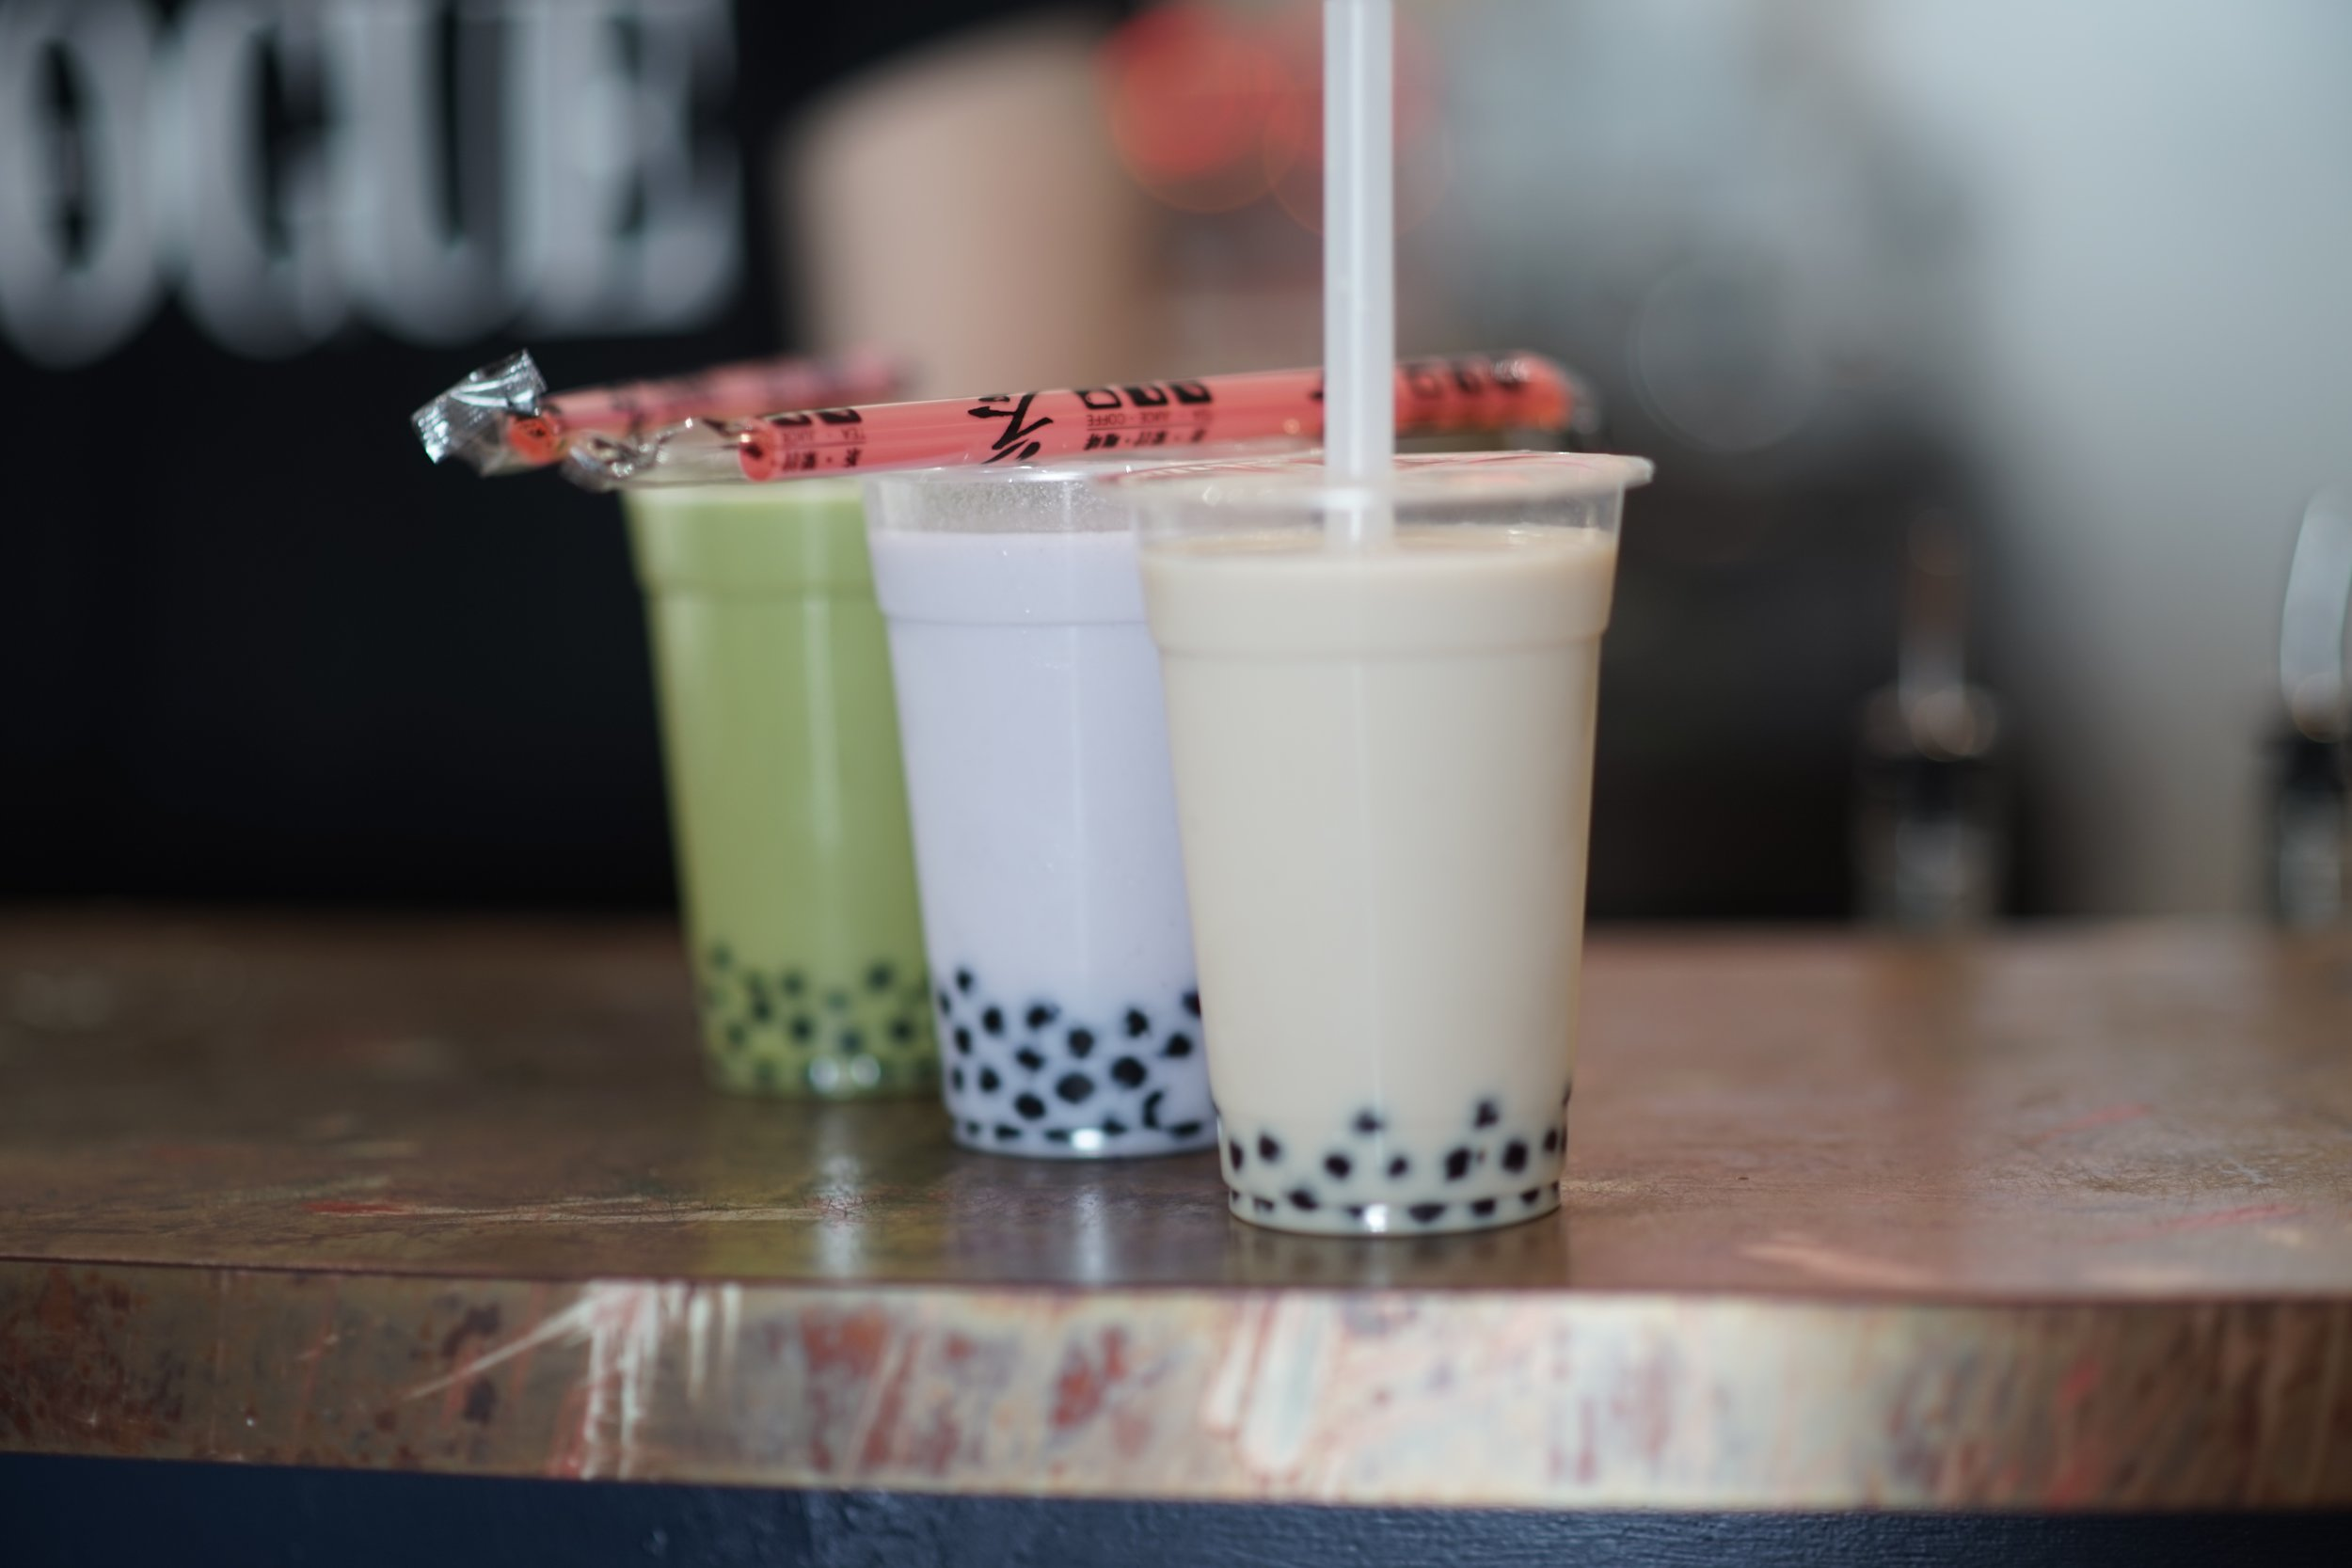 Ramo Ramen sells fresh, real leaf bubble teas with homemade tapioca pearls and other toppings. Pictured above are three of our most popular flavours: matcha, taro, and assam black.